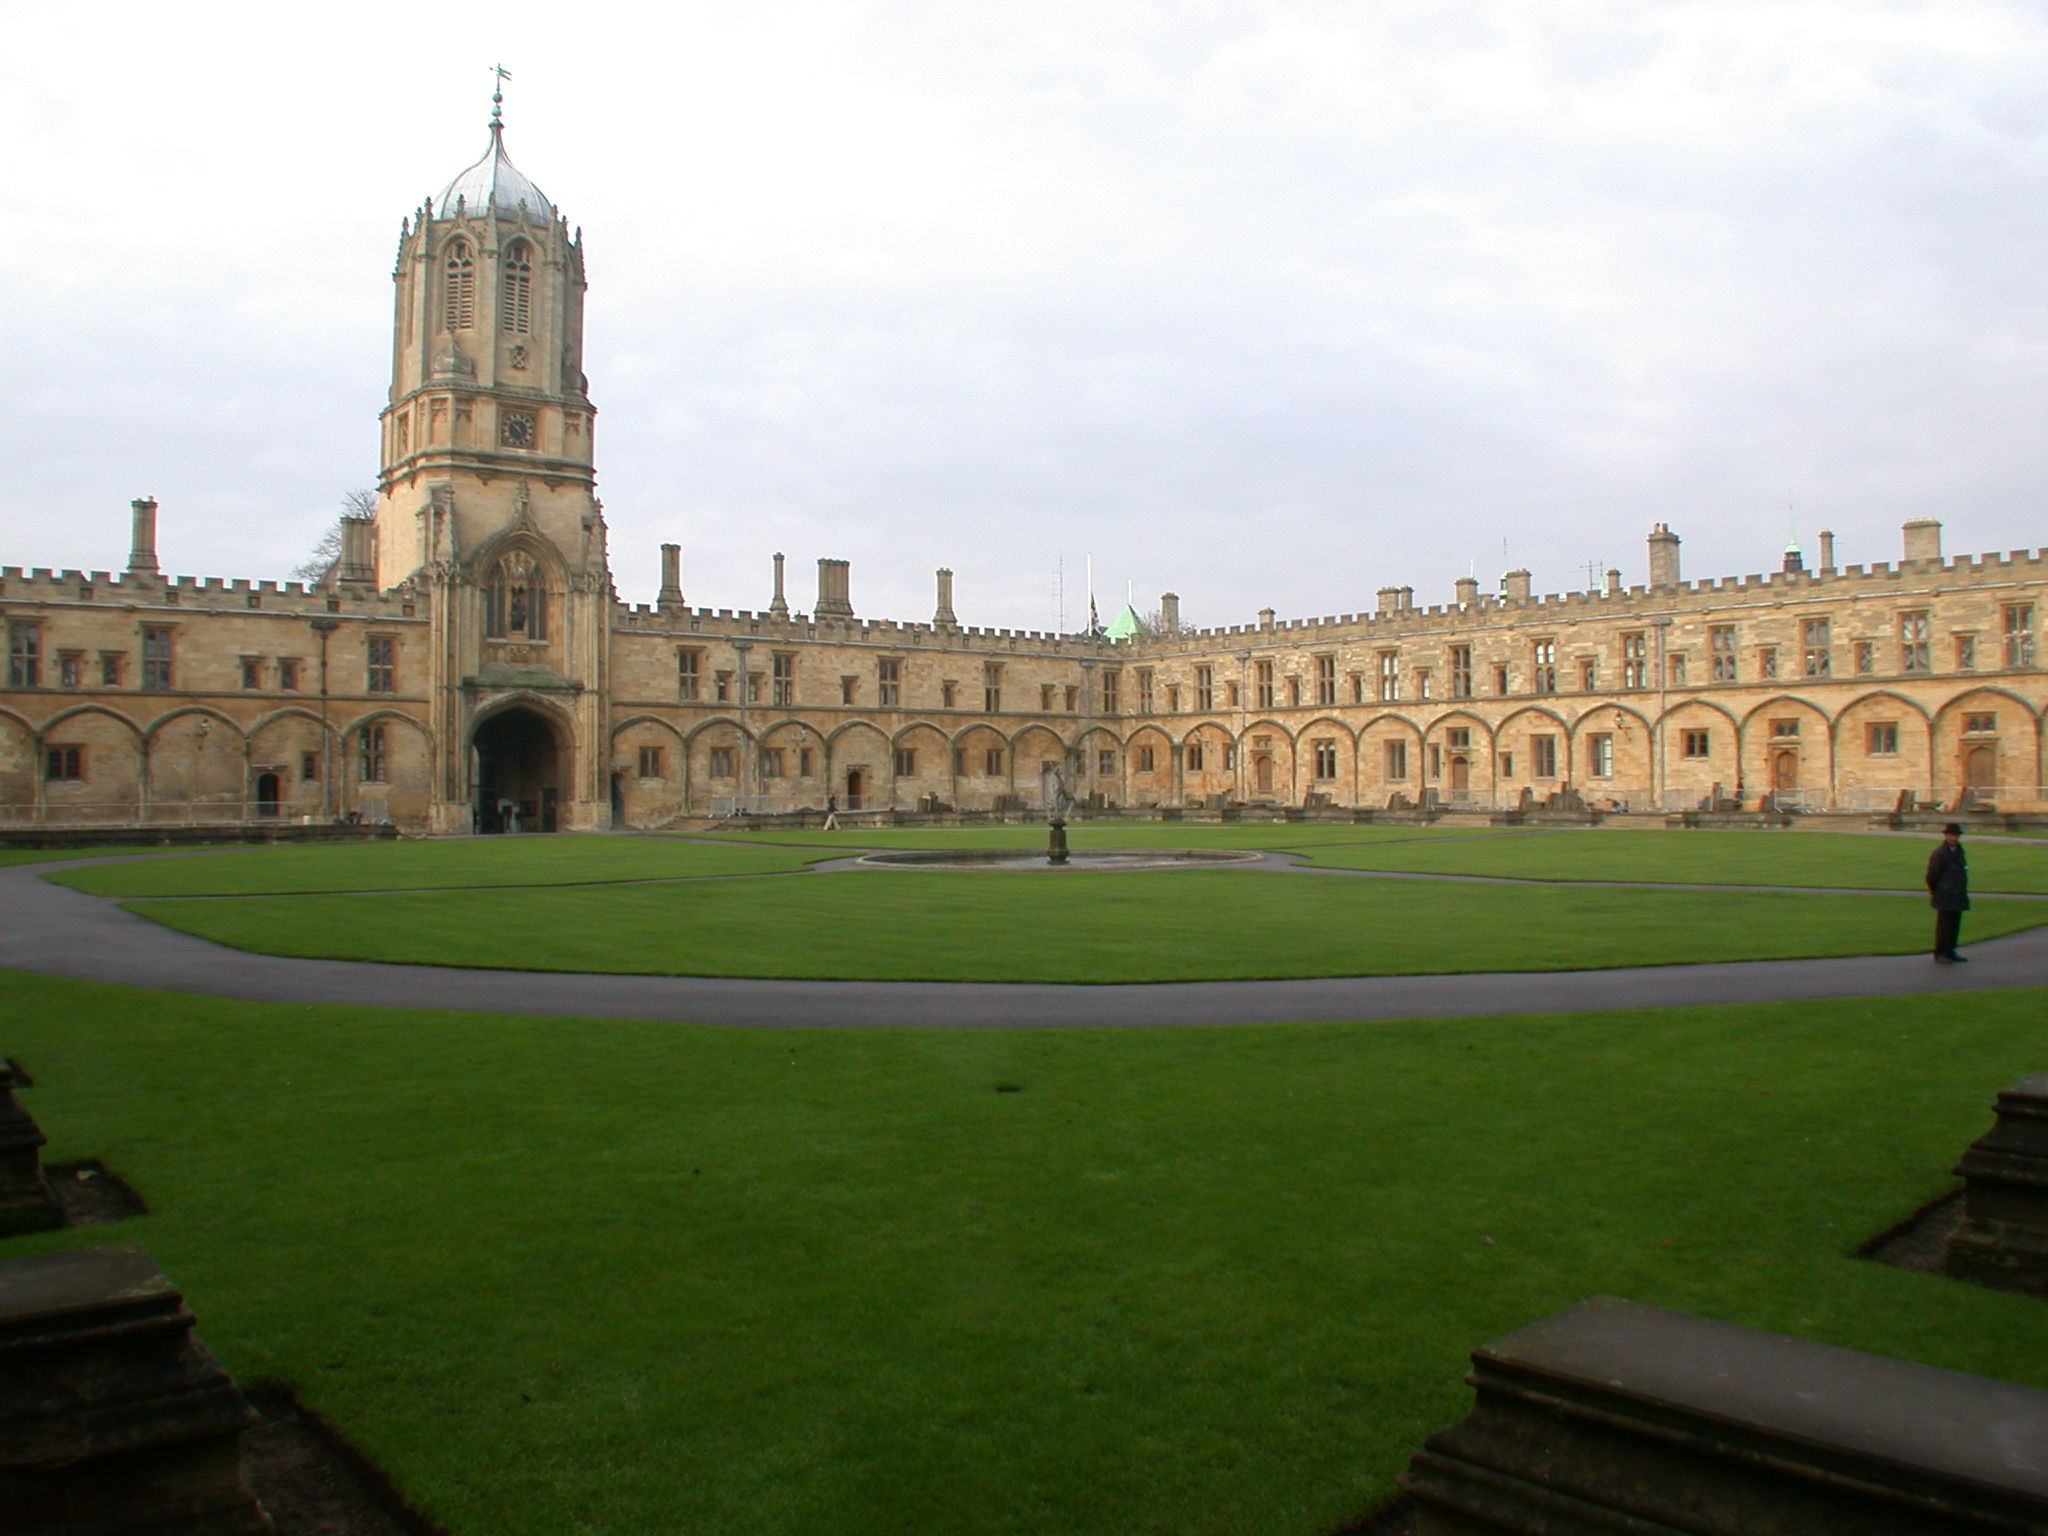 britain college The university of oxford is one of the leading universities in the world.